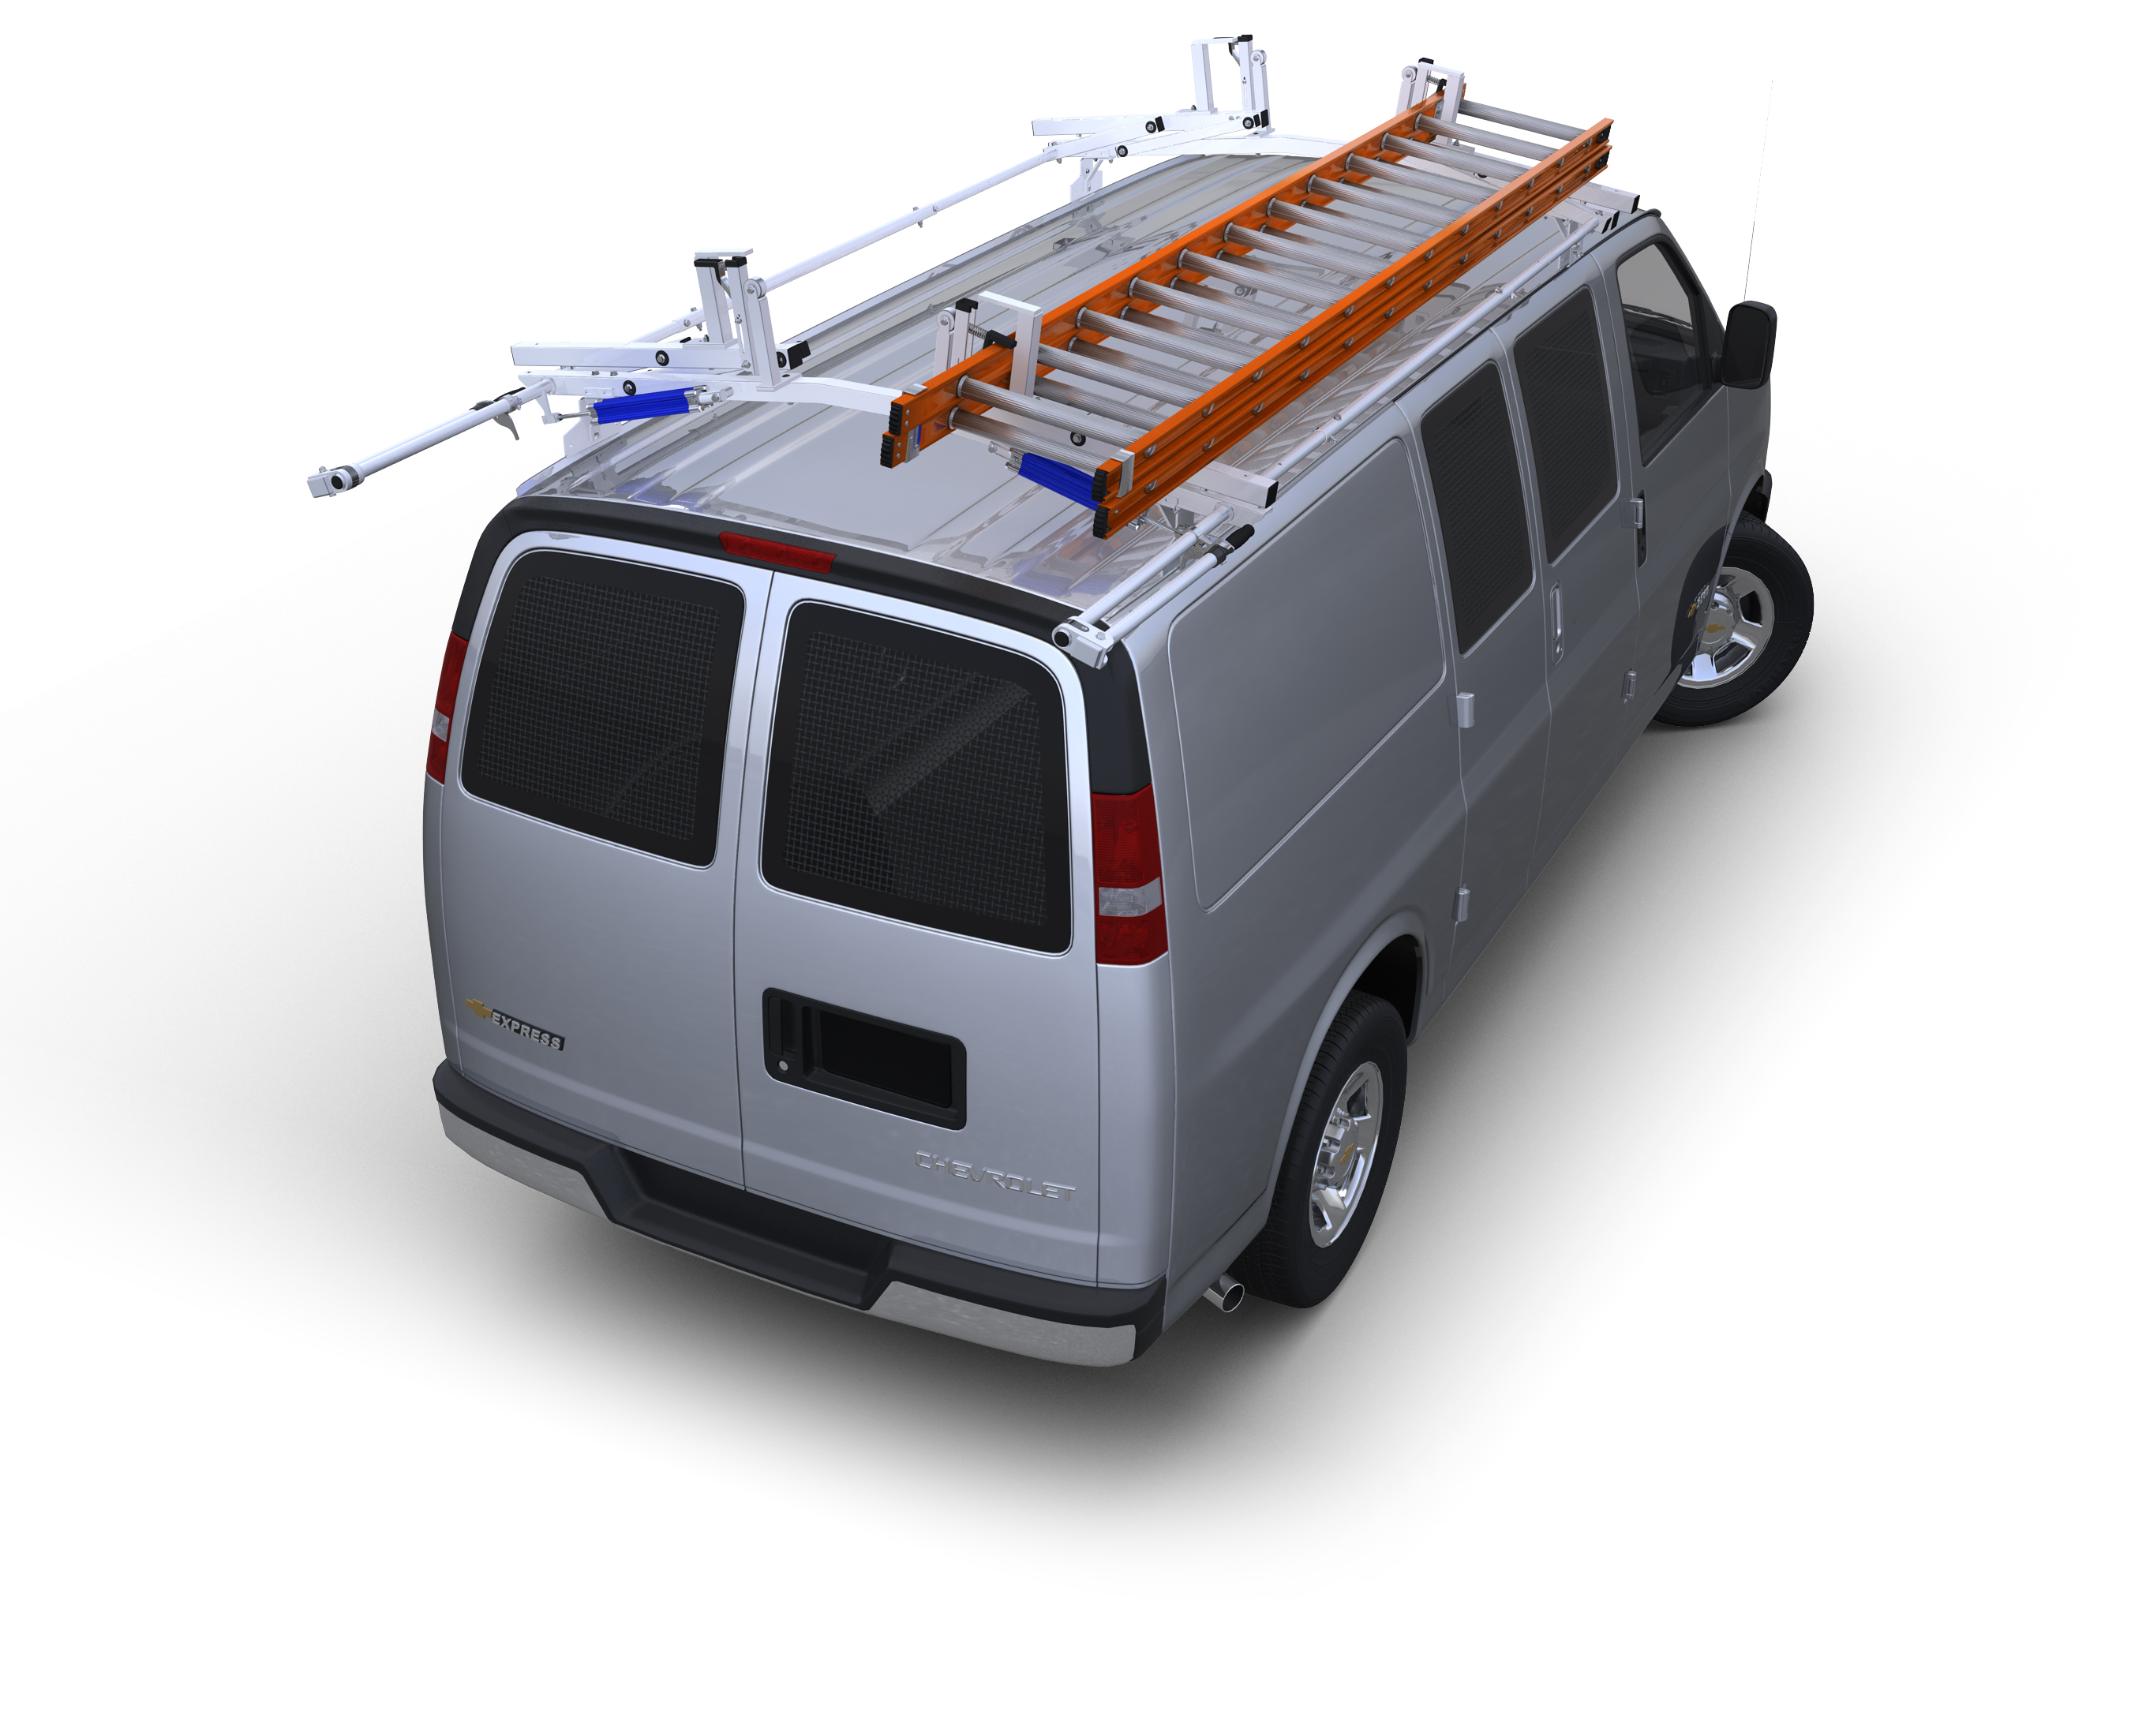 2014 & Newer Transit Connect Long WB Electrical Van Package, Aluminum Shelving - SAVE $100!